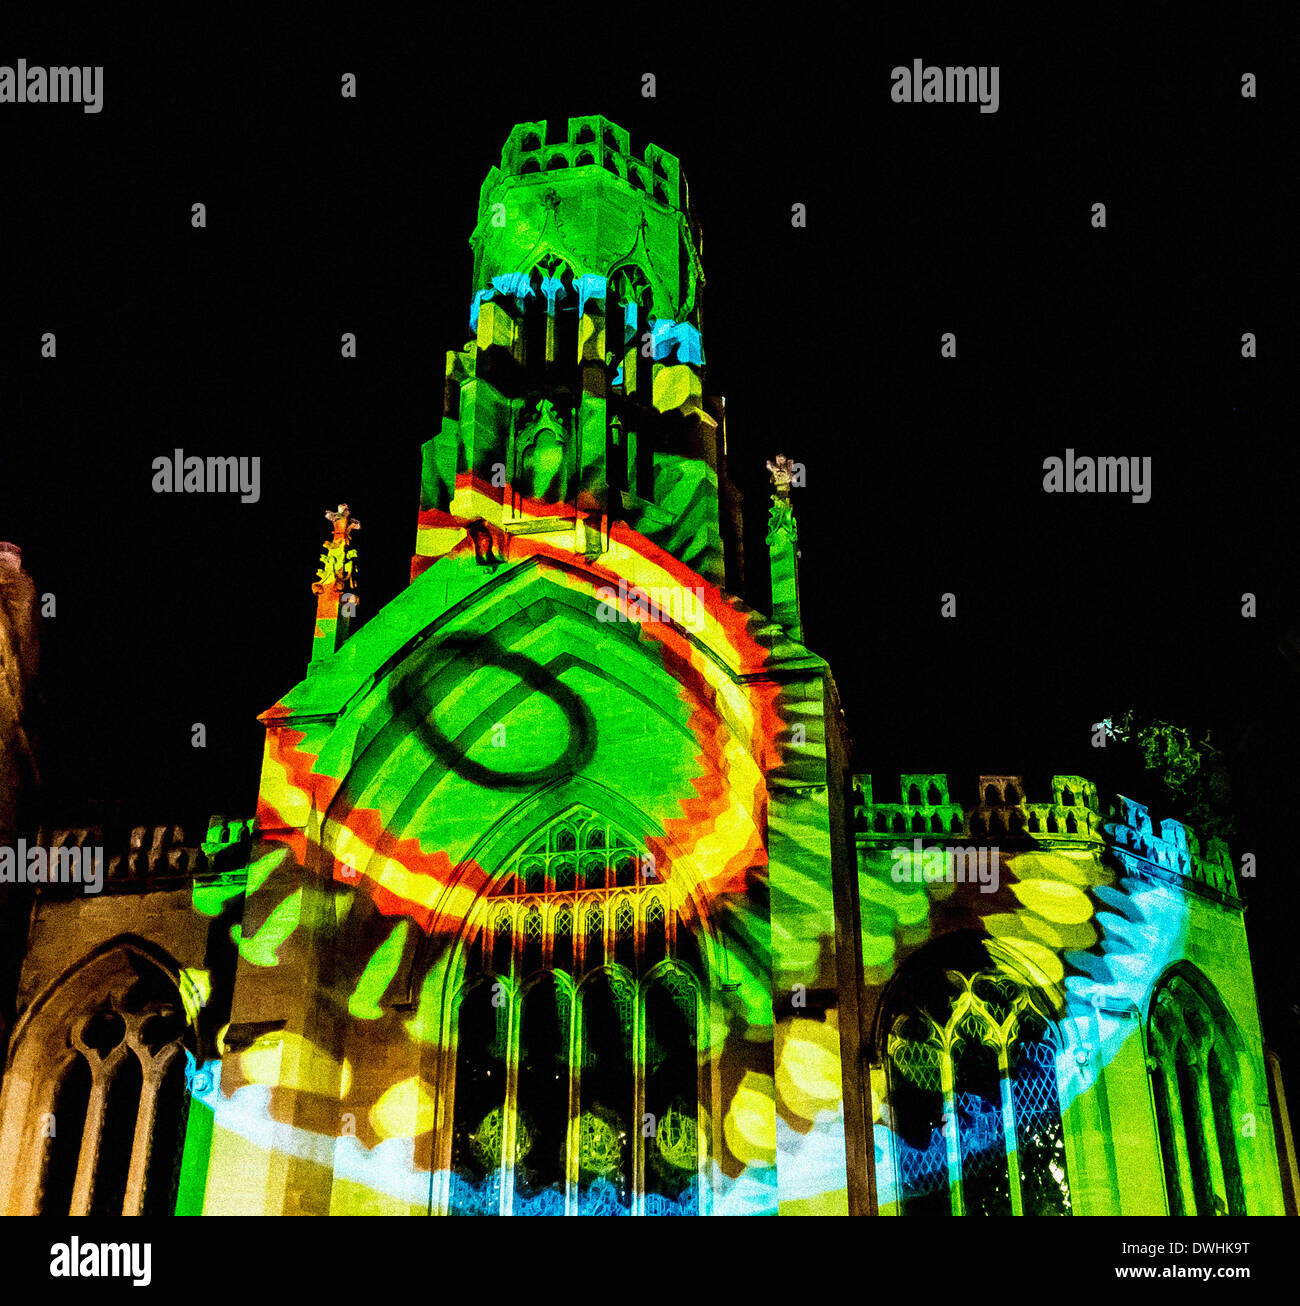 St Helen's Church, Stonegate York washed with projected colour patterns during the Illuminating York Festival. - Stock Image